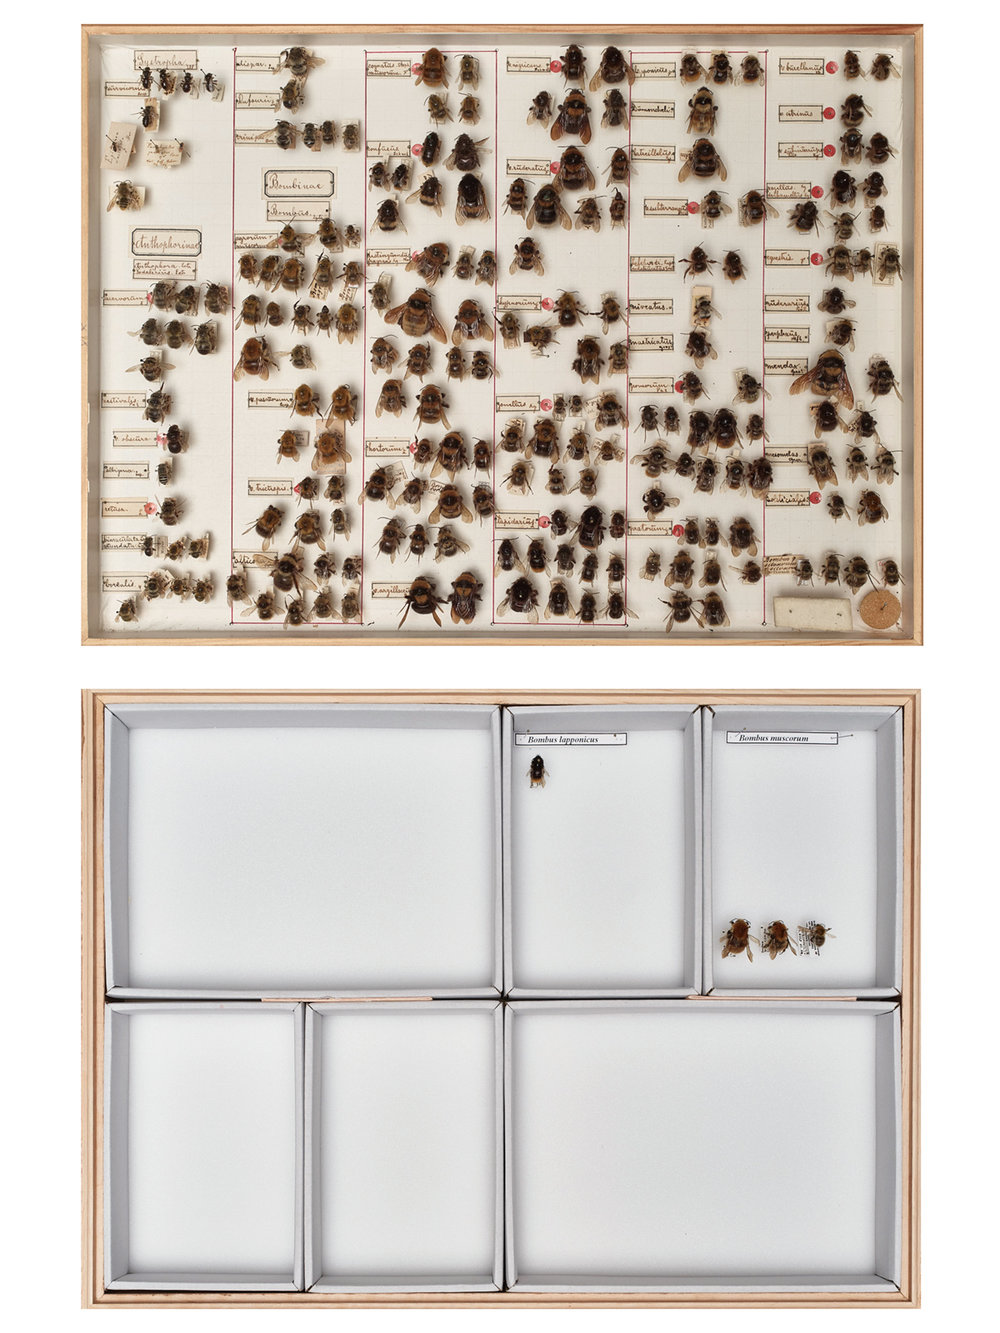 Historic and Contemporary Bumblebee Collection LOCATION Entomological Association Krefeld, Germany DESCRIPTION The decline in insect biomass and diversity in recent years is dramatic. Causes and consequences are largely unknown.